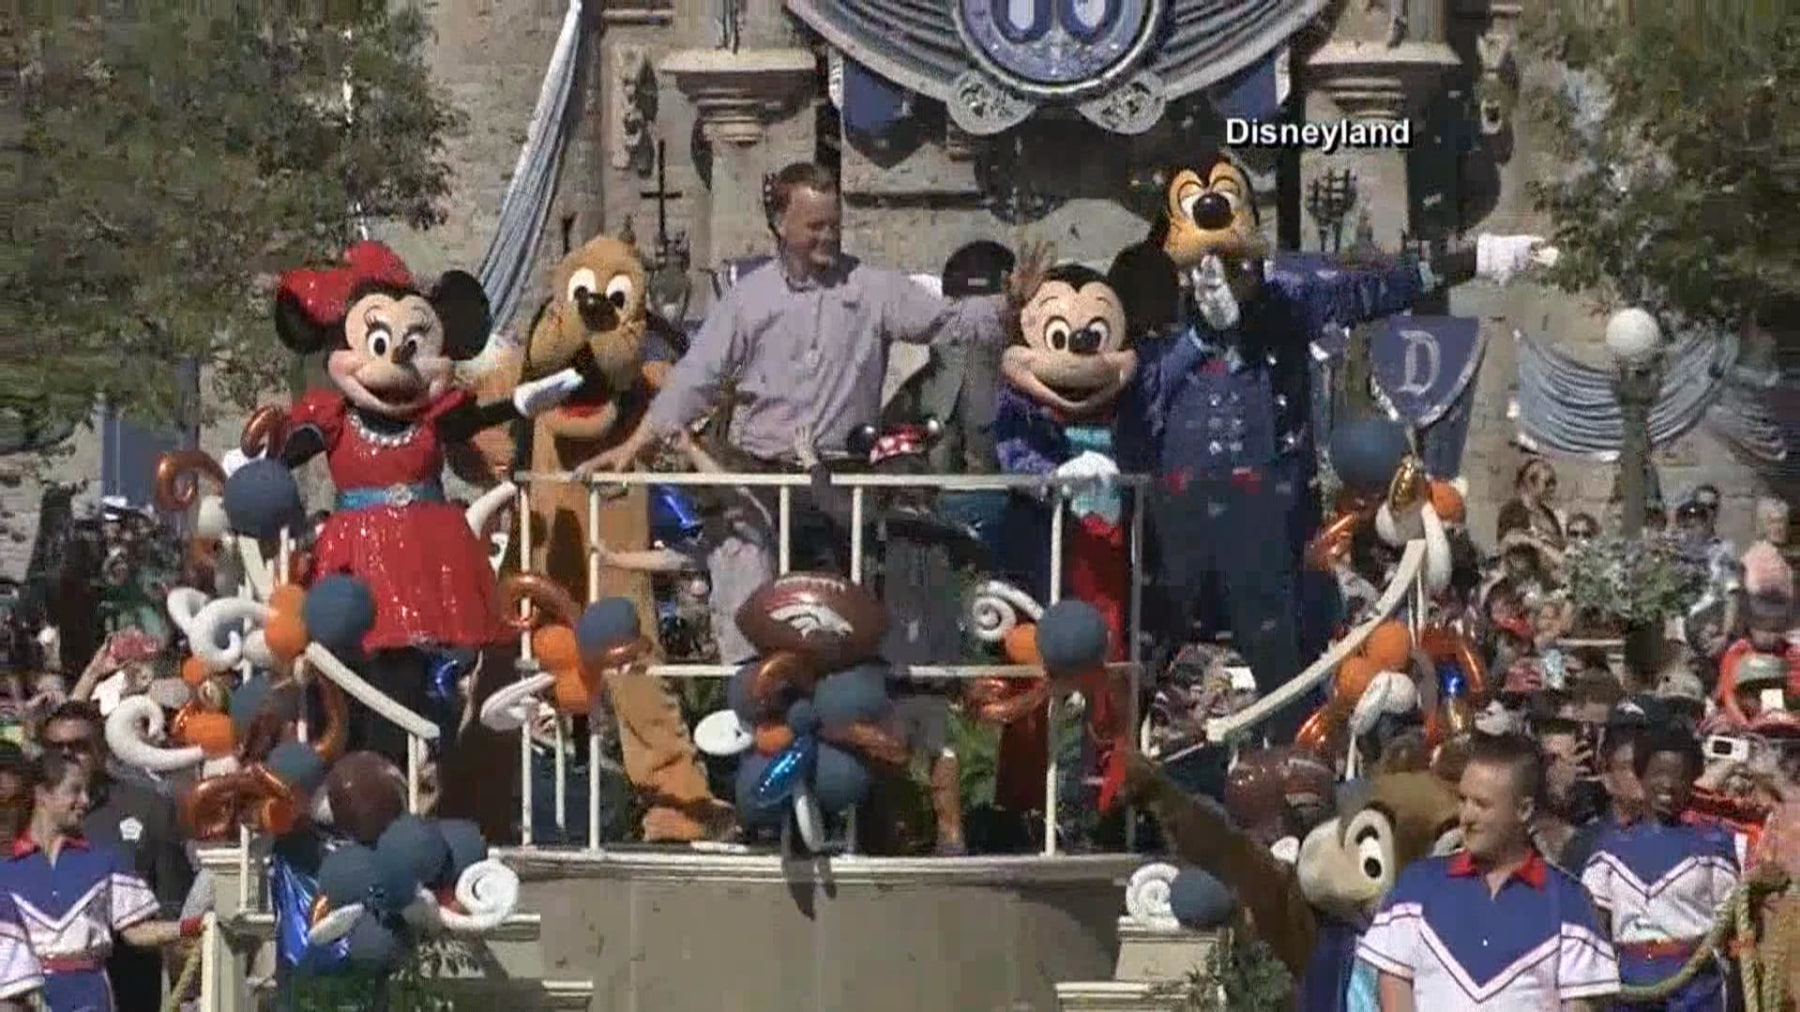 10 Crazy Things You Never Knew About Walt Disney World Todaycom Circuit Breaker Symbol Chapter 2 Power Apparatus Ihs Engineering360 Peyton Manning Won The Super Bowl And Went To